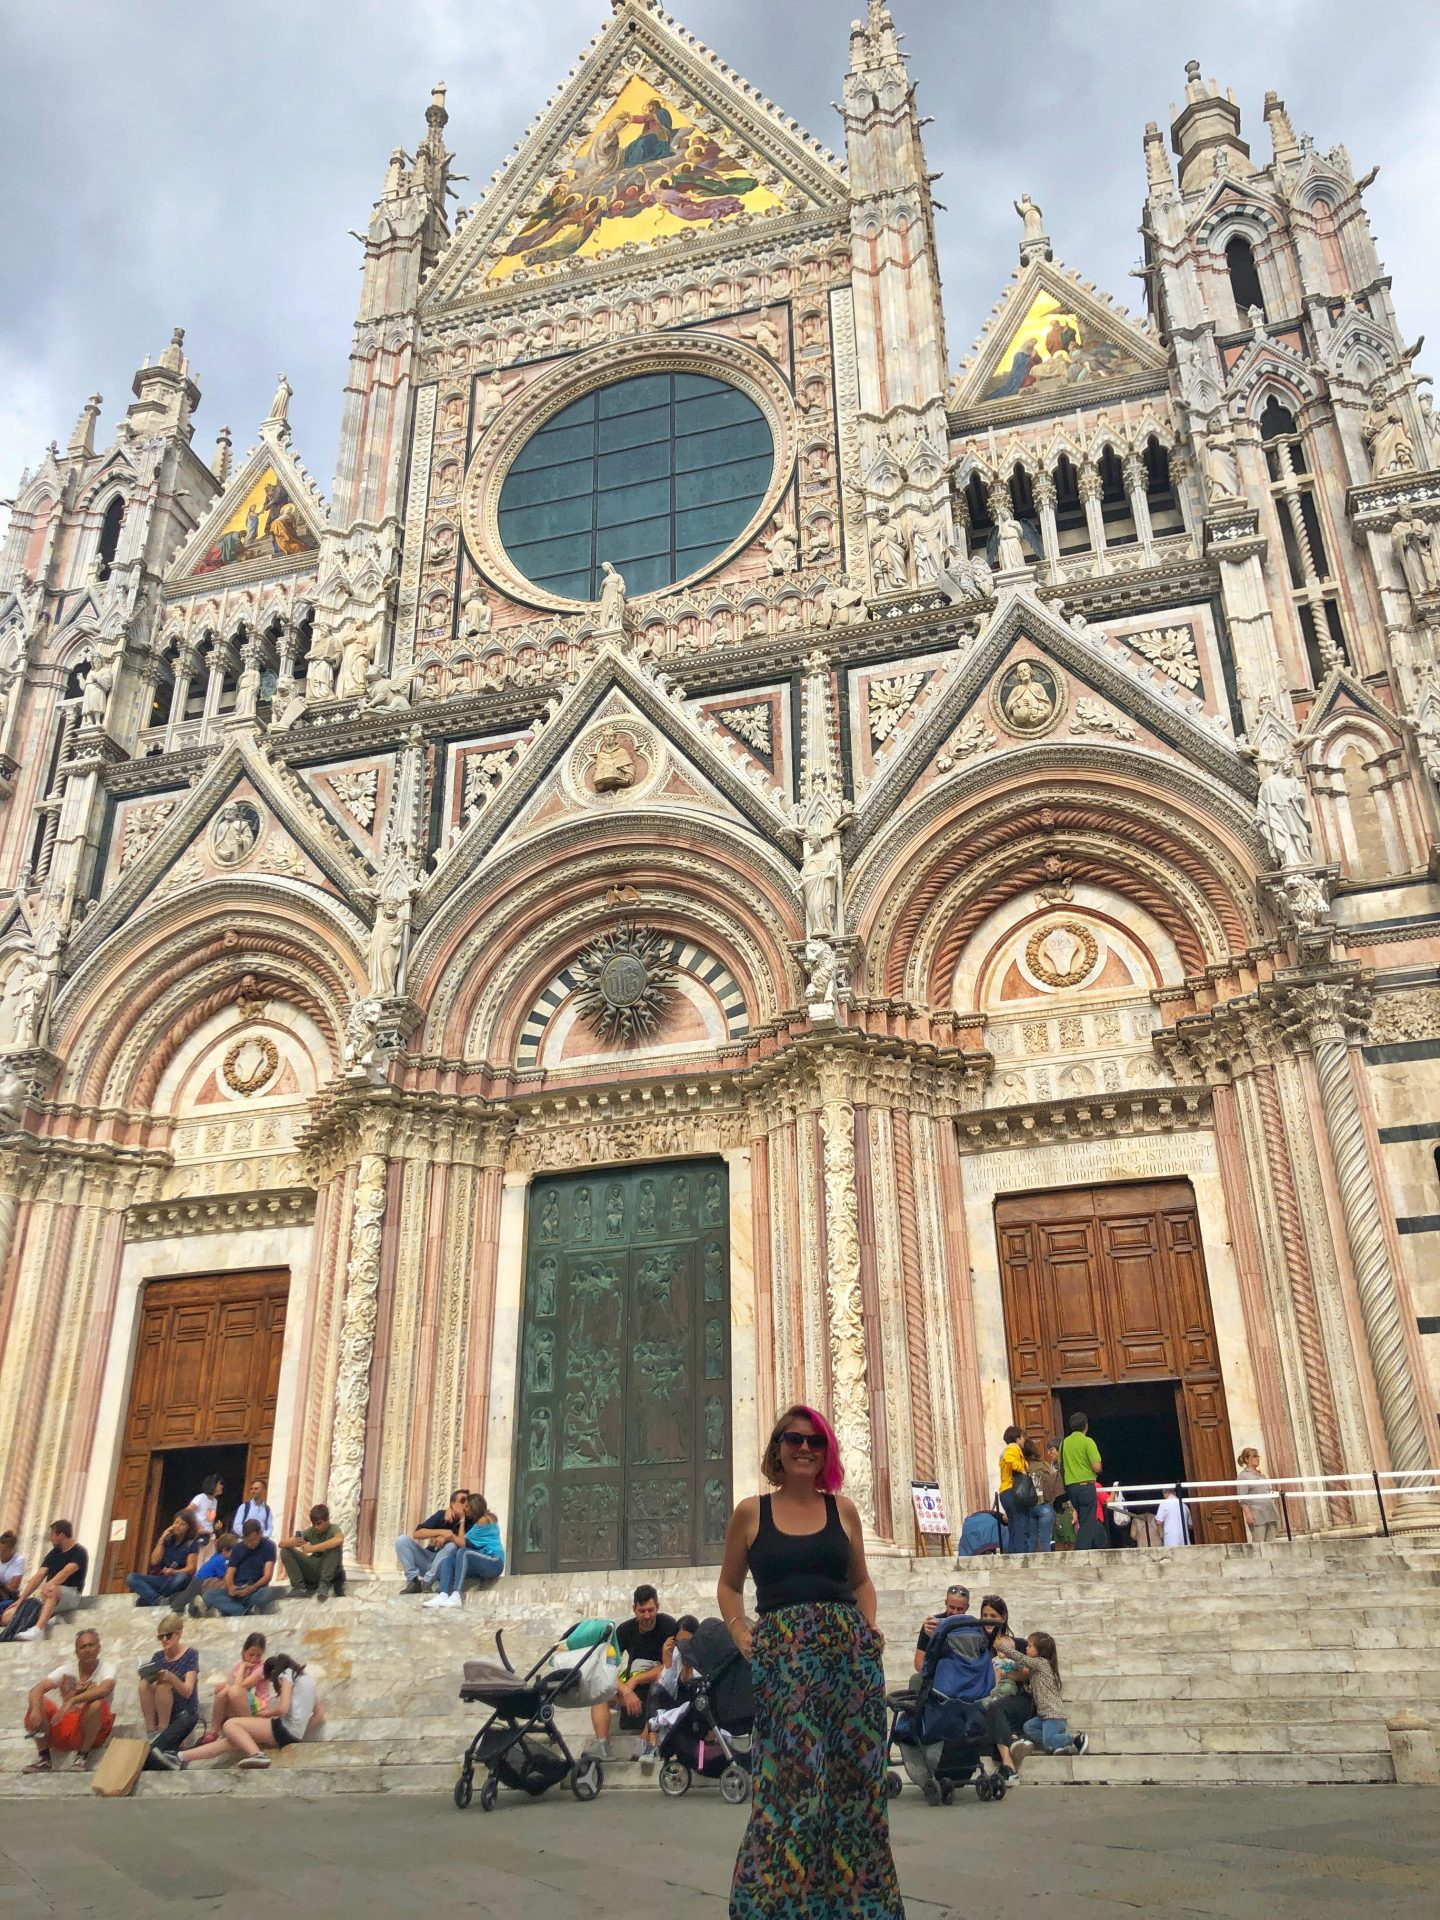 One of the many stunning buildings in Siena, this majestic cathedral is cream with a pink tint and ornate decoration everywhere you look. Crowds of people line the steps in front and I'm standing, smiling in the foreground.